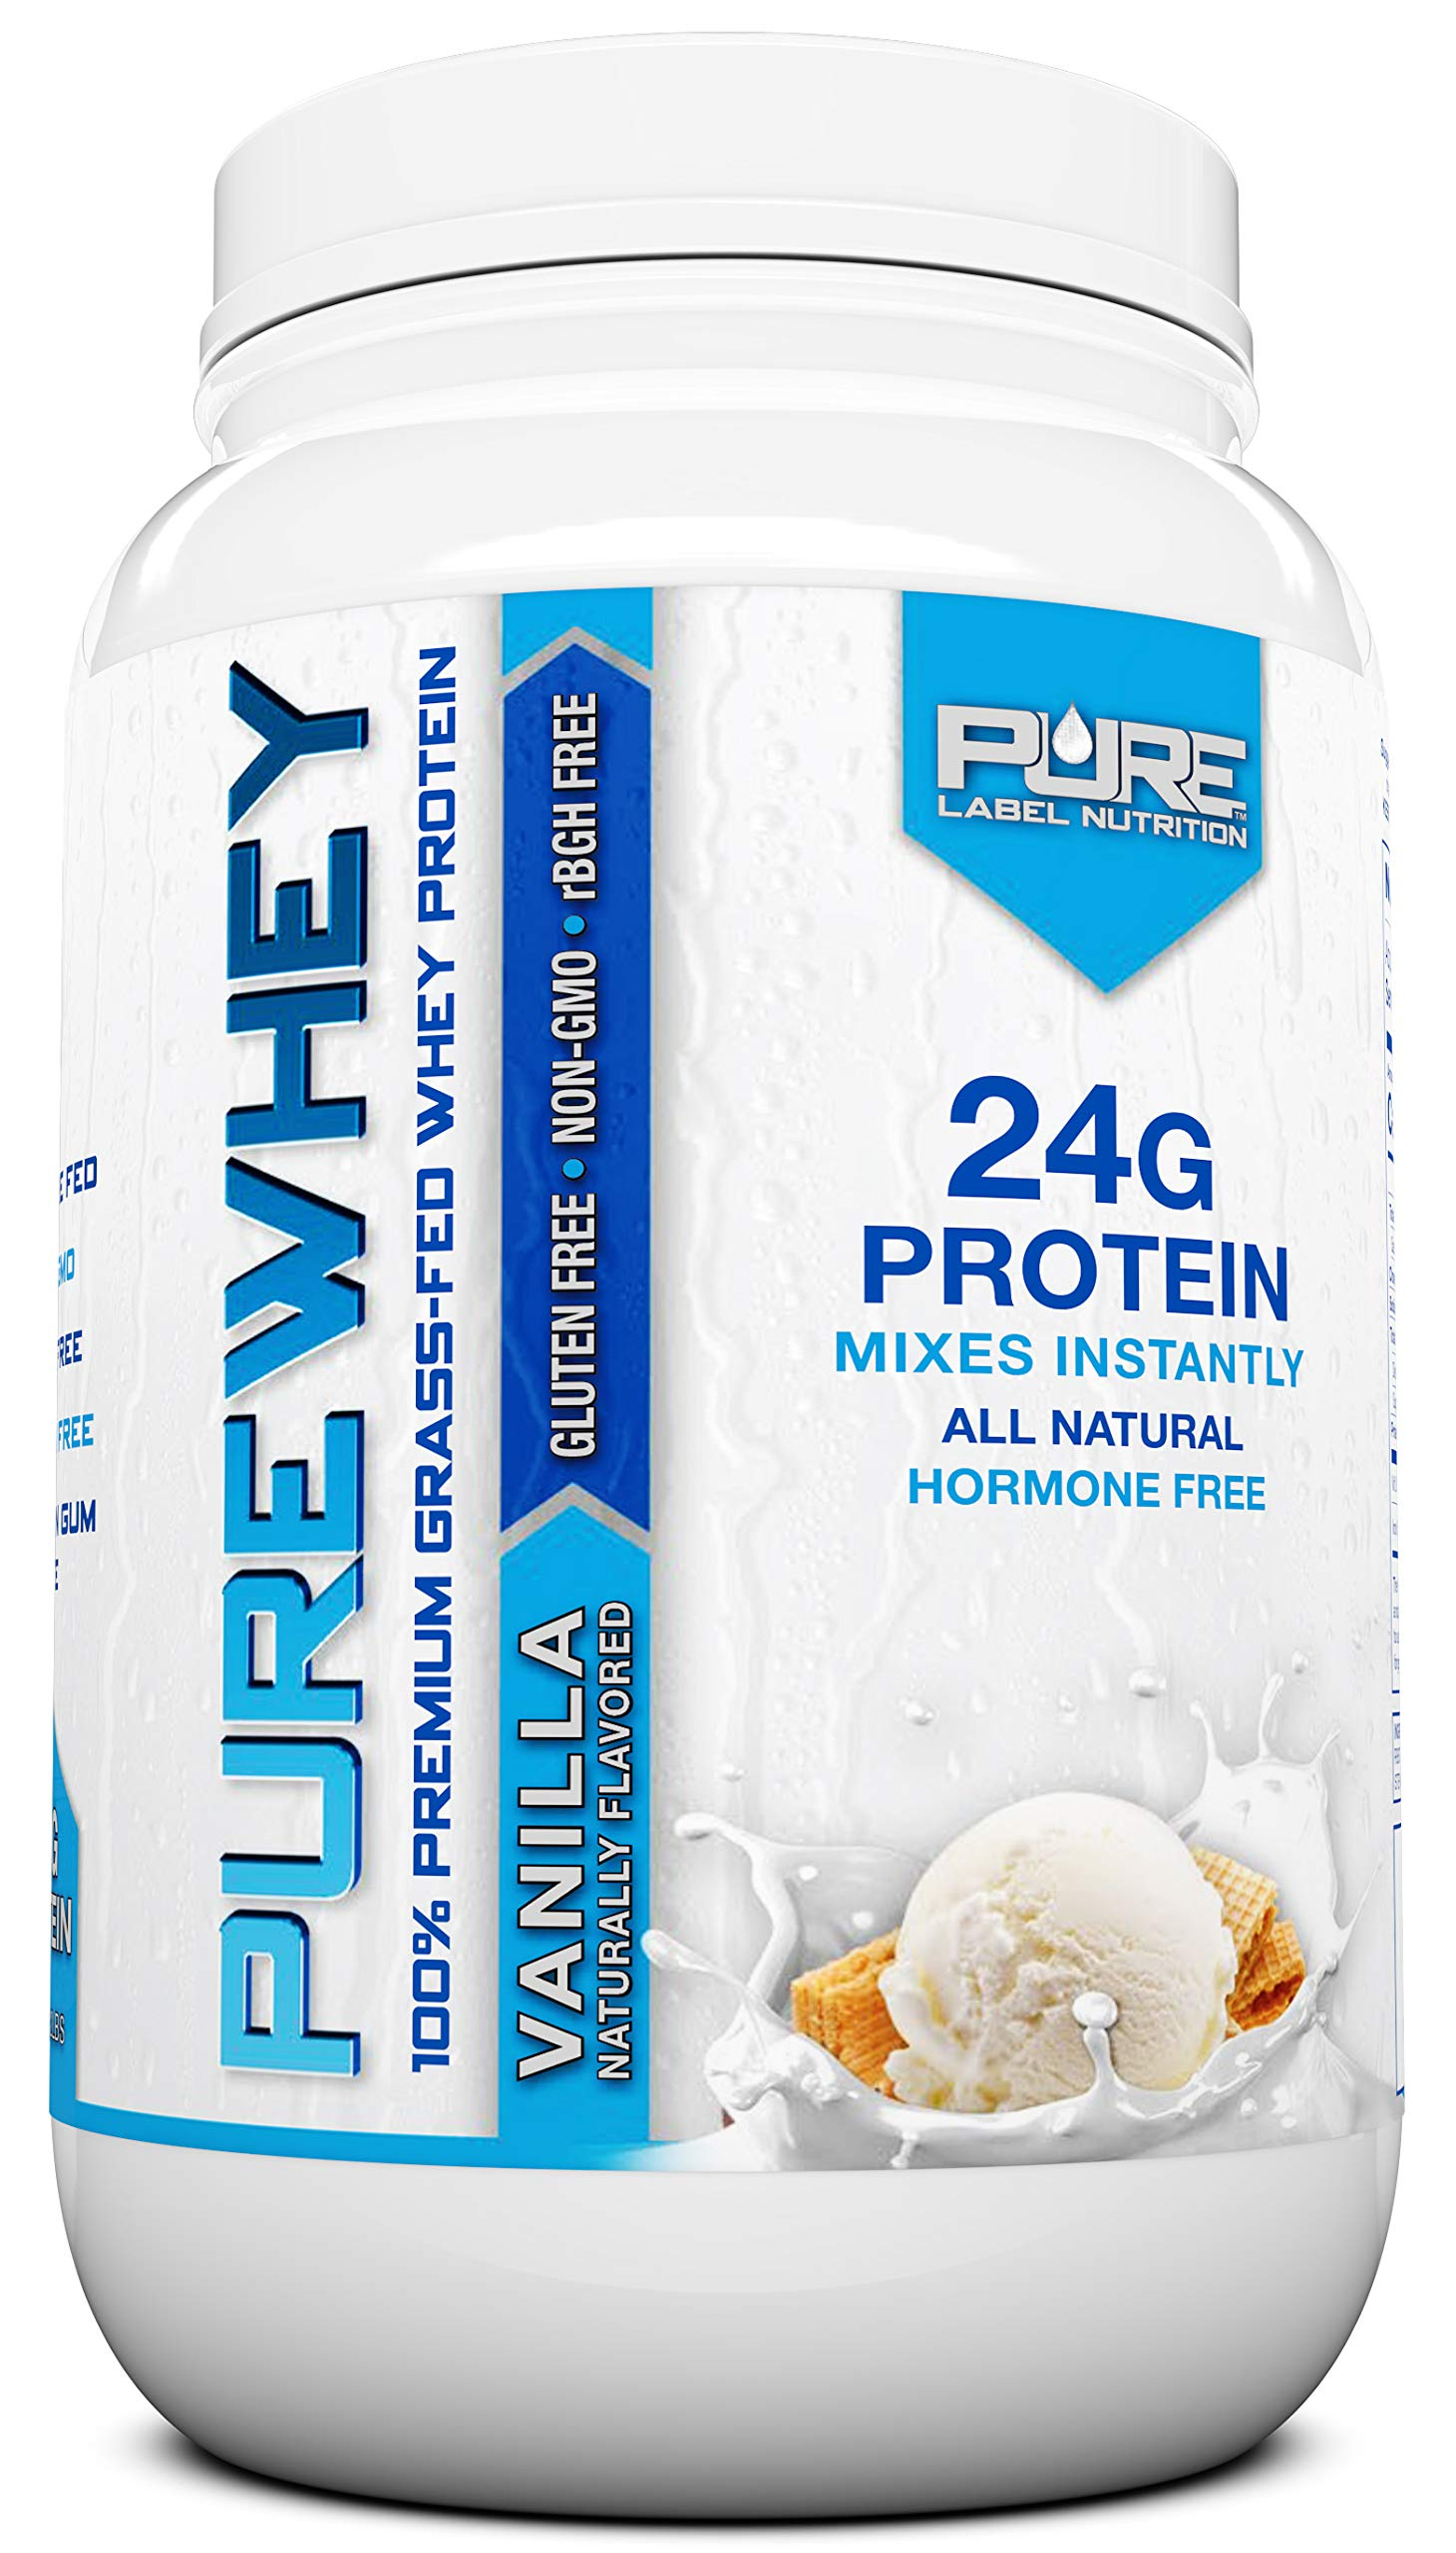 Grass Fed Whey Protein Powder | Vanilla 2lb Grass Fed Whey | 100% Natural Whey w/No Added Sugars | rBGH Free + GMO-Free + Gluten Free + Preservative Free | Pure Whey by Pure Label Nutrition